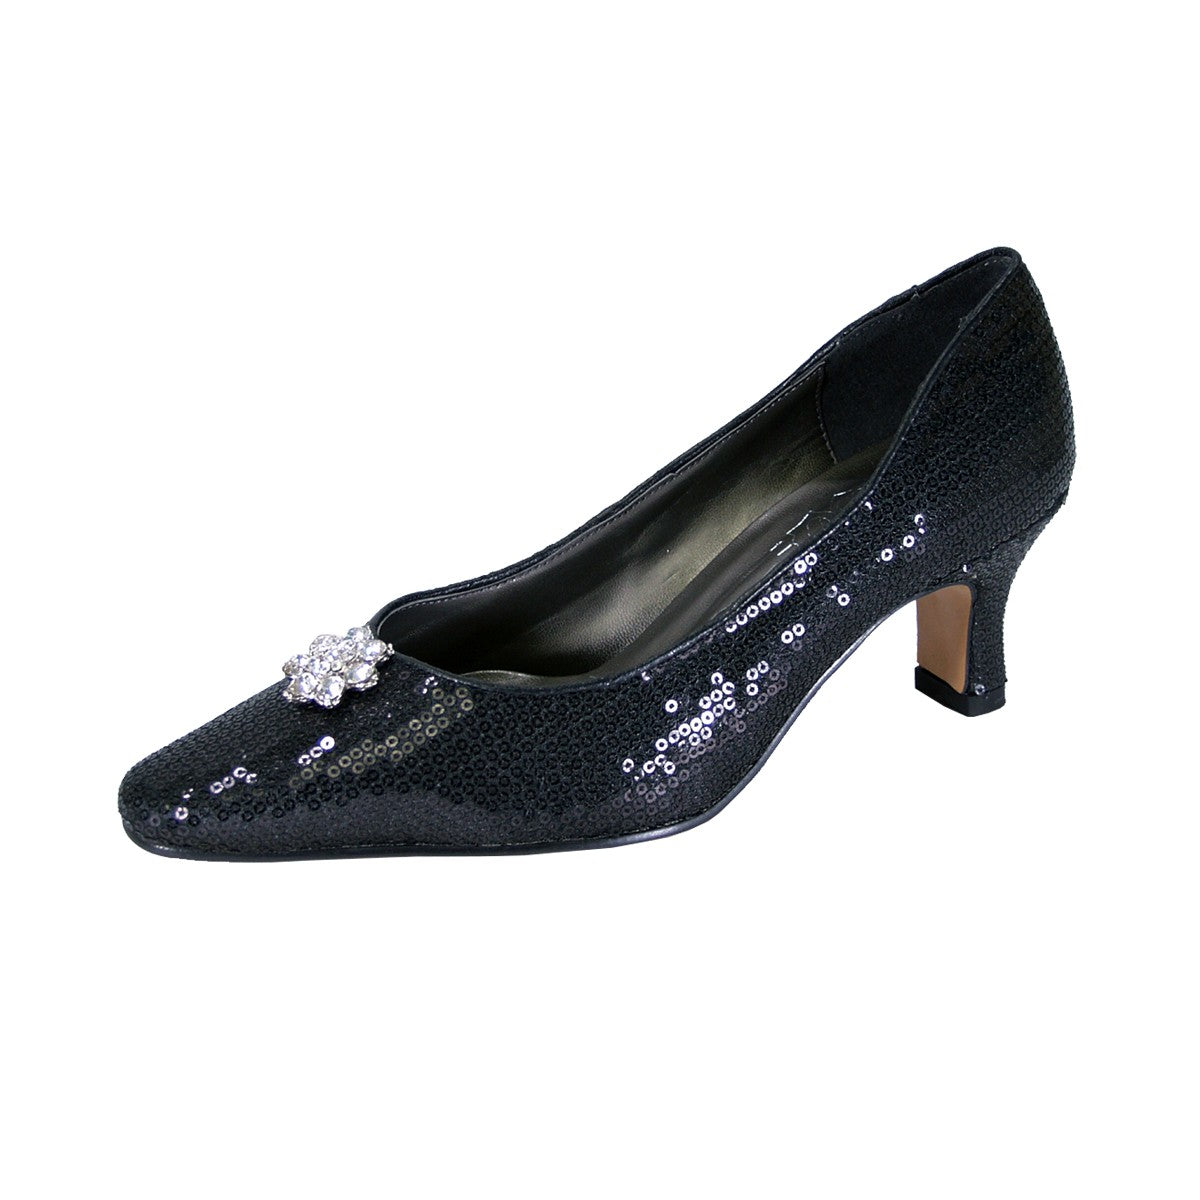 Women Church Shoes DP726C-Black - Church Suits For Less